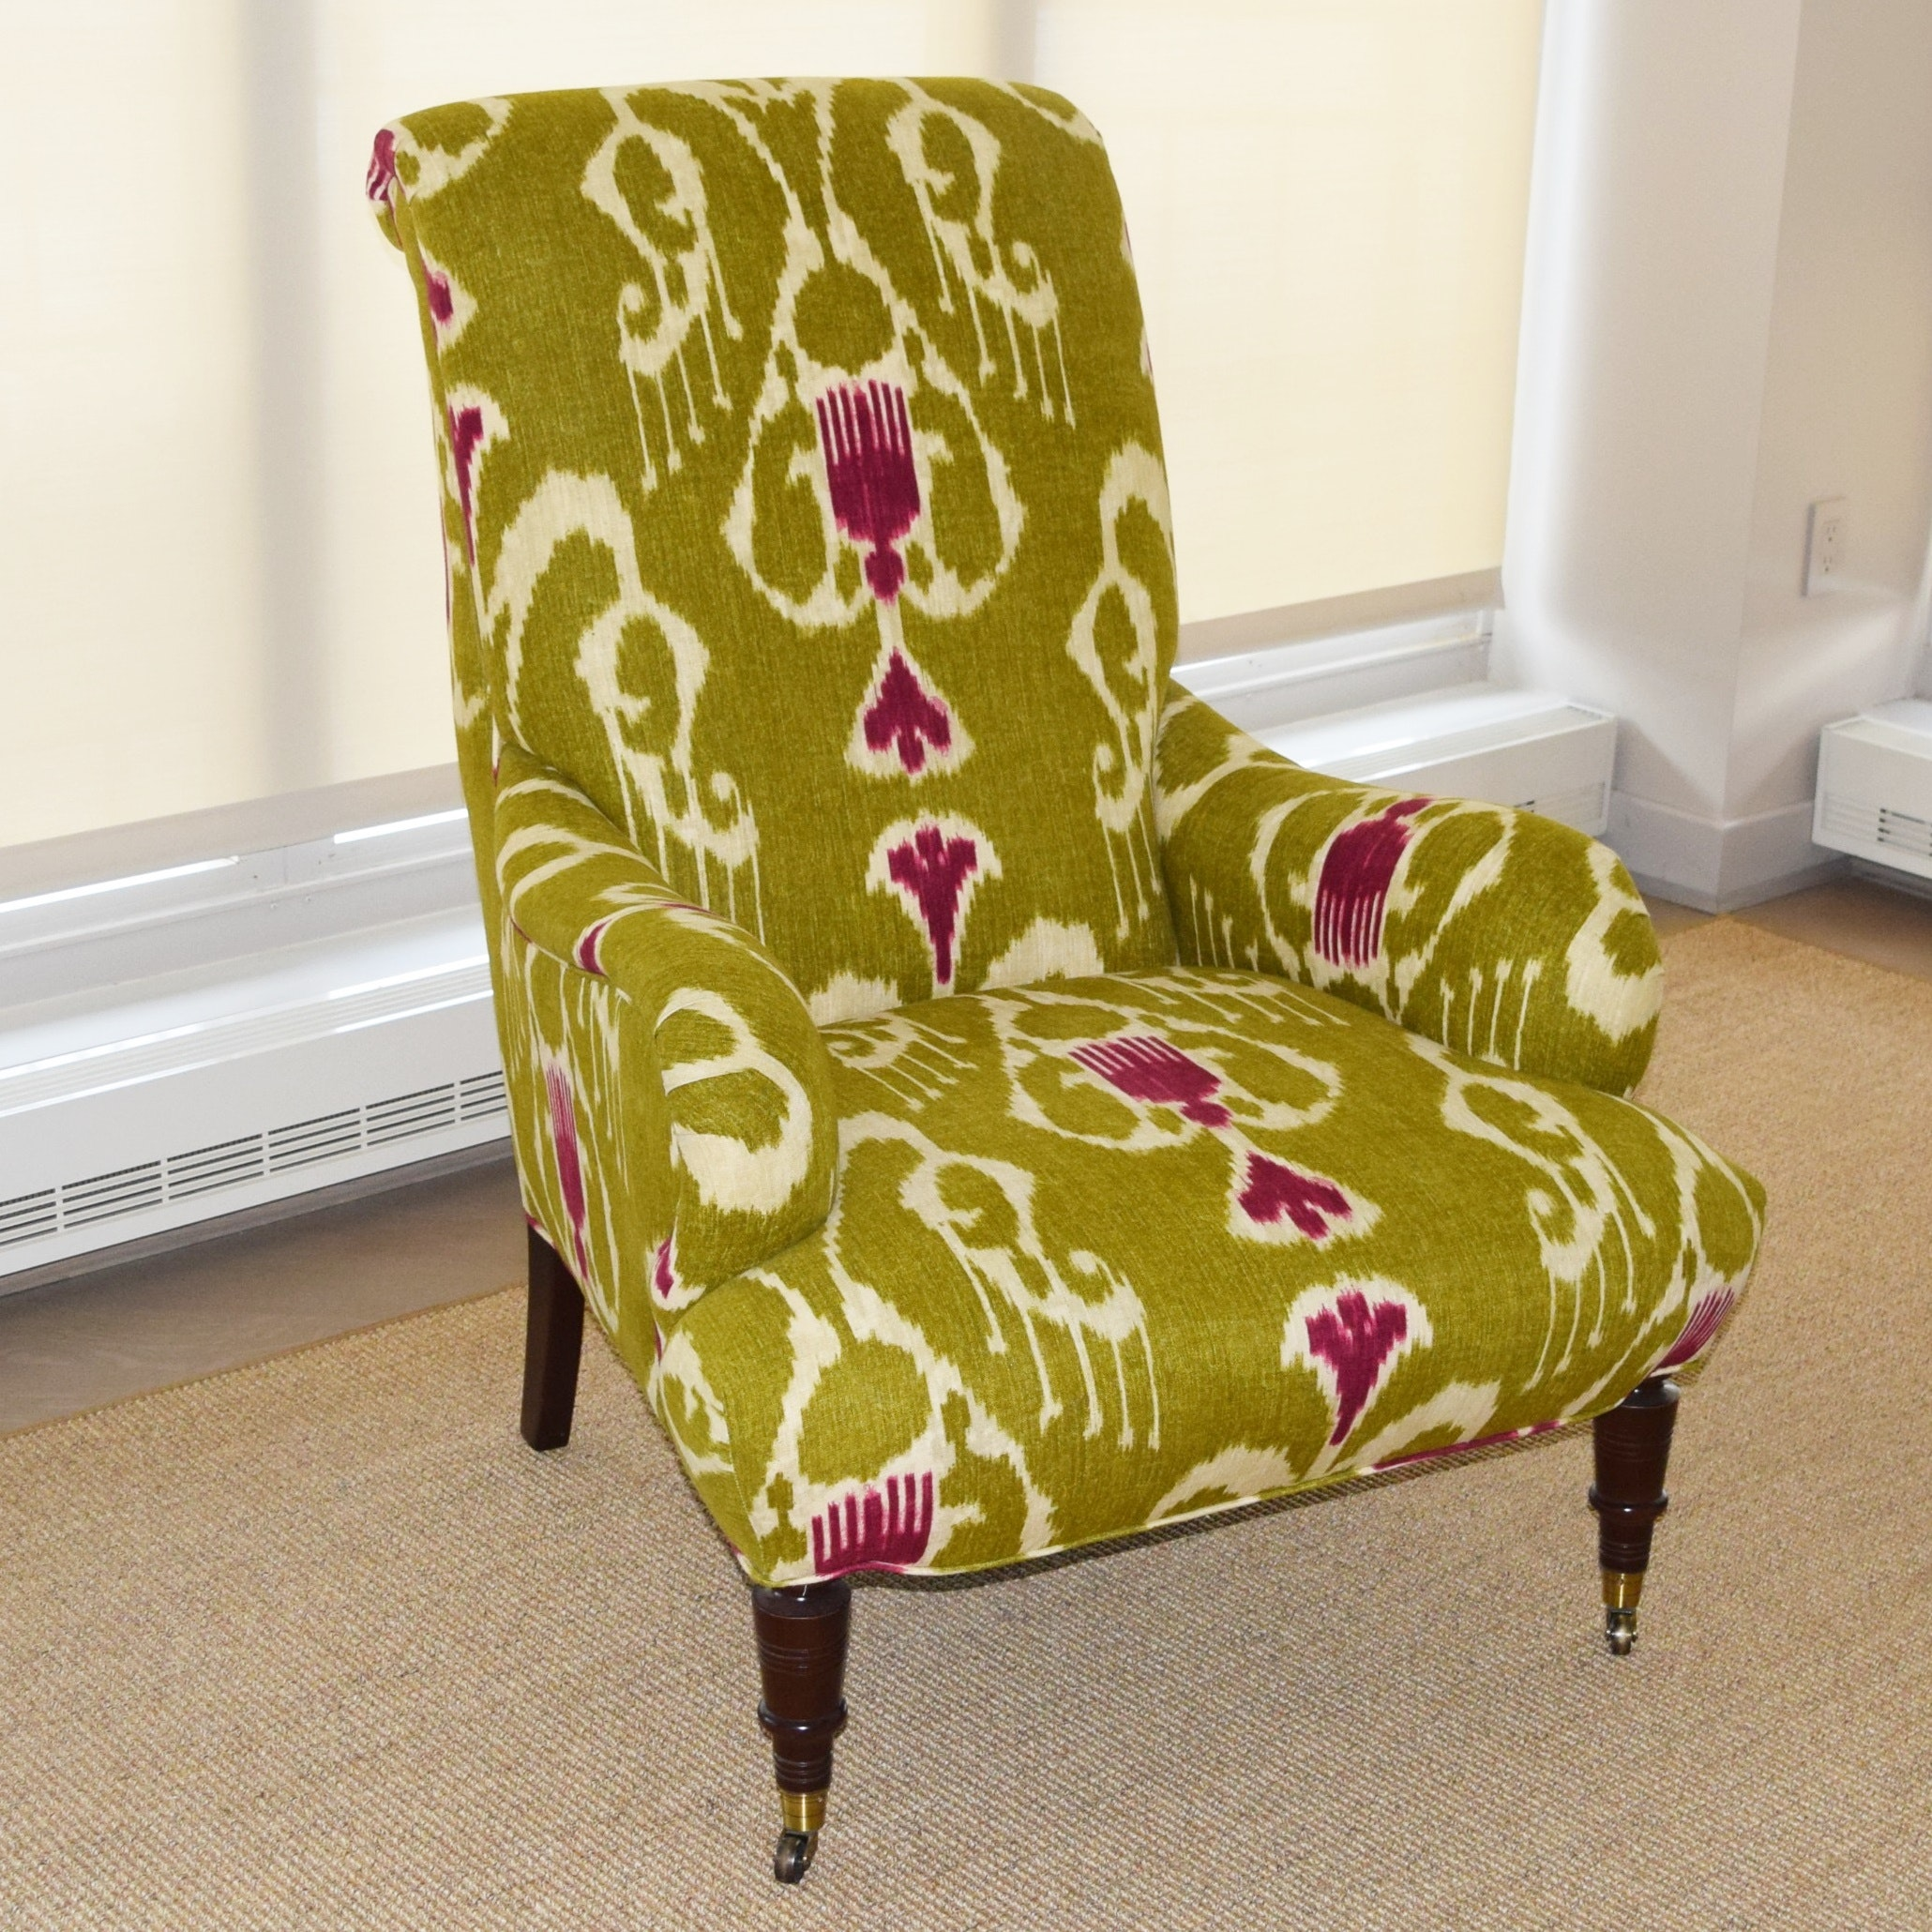 Upholetered High Back Arm Chair Upholstered In Ikat Fabric ...